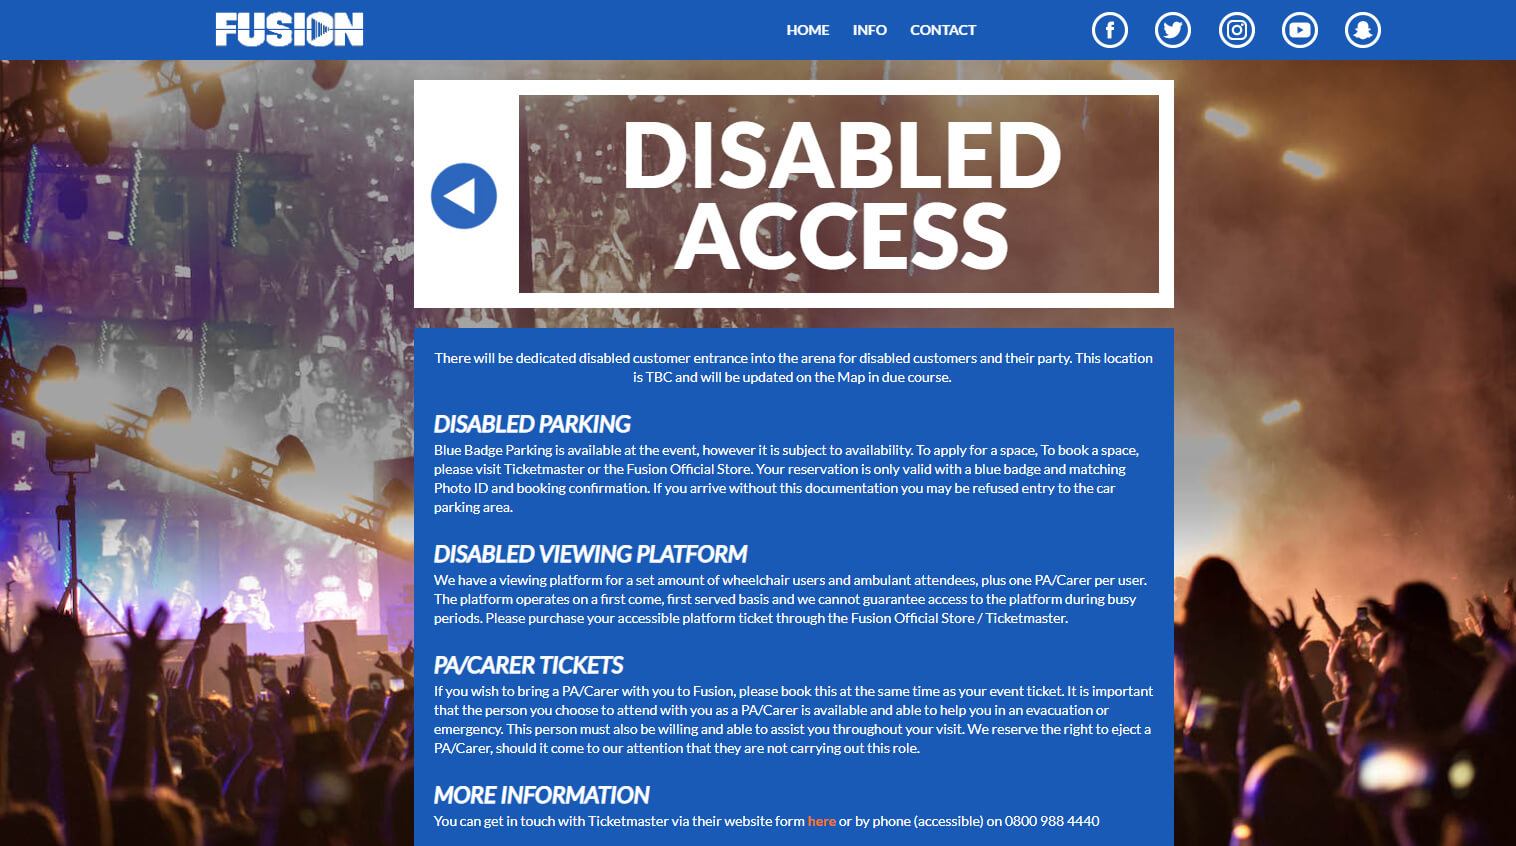 A screenshot of the disabled access information on Fusion Festival website.